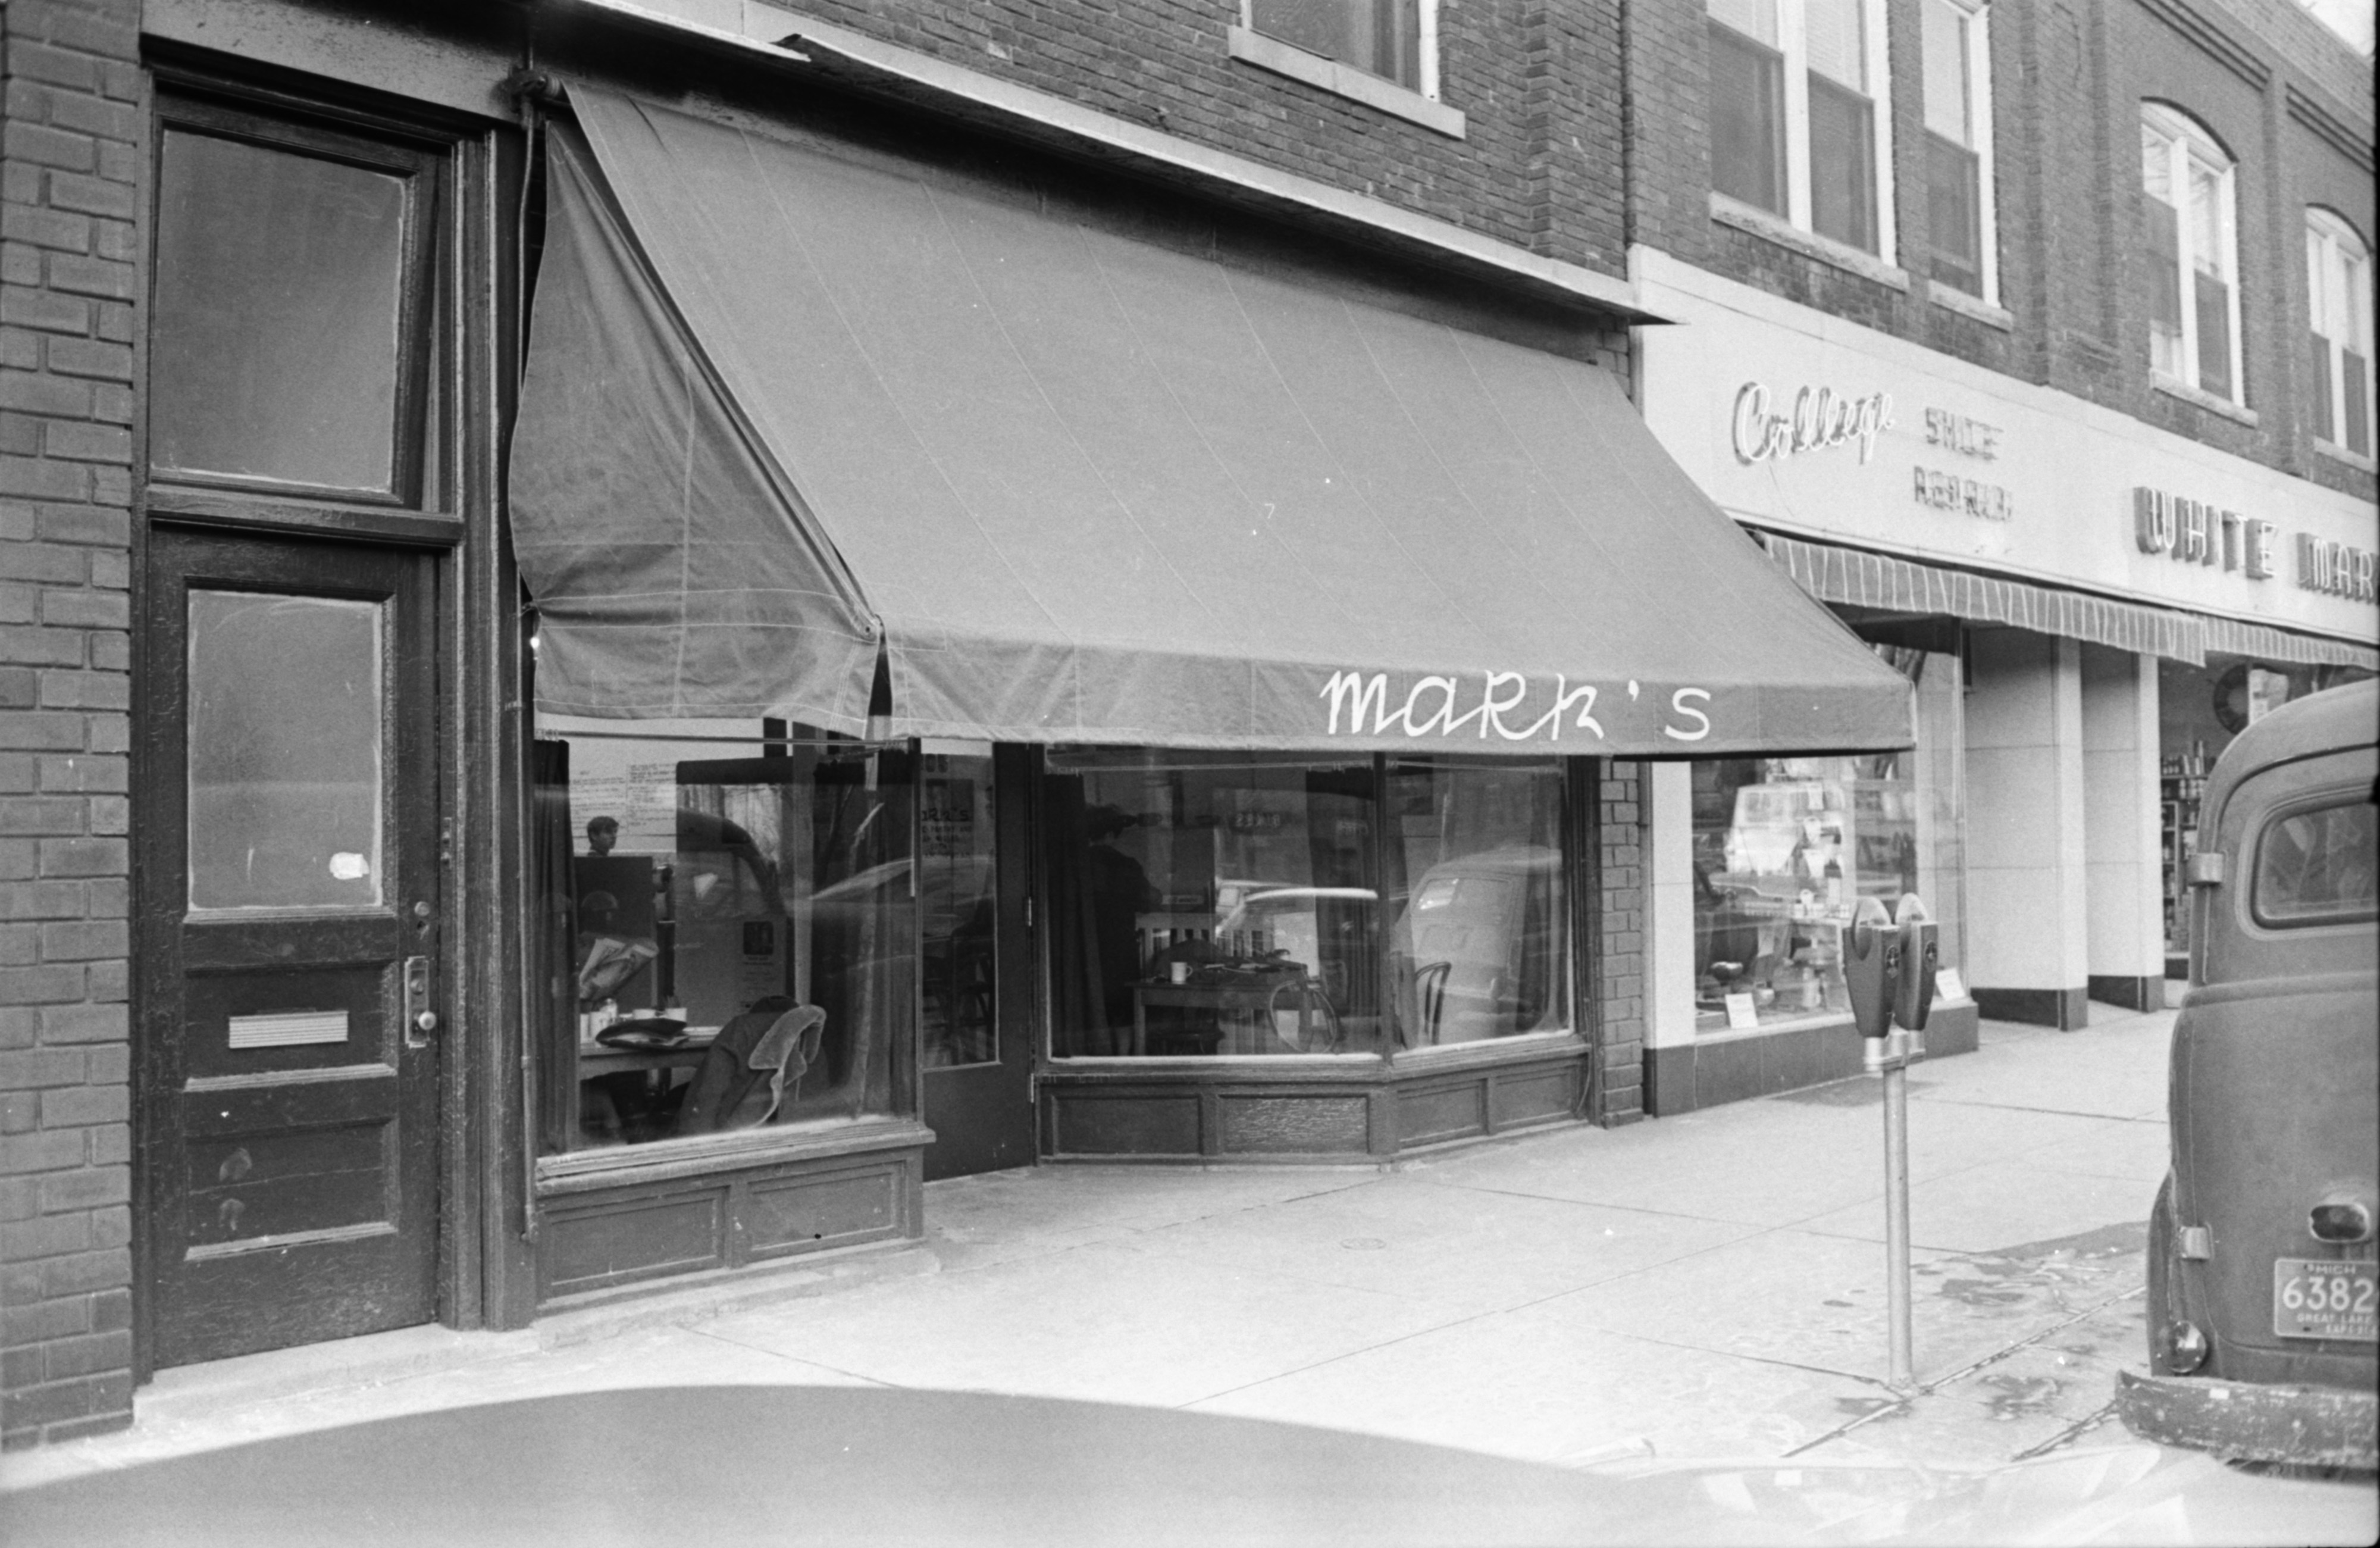 Mark's Coffee House, Exterior, February 1968 image